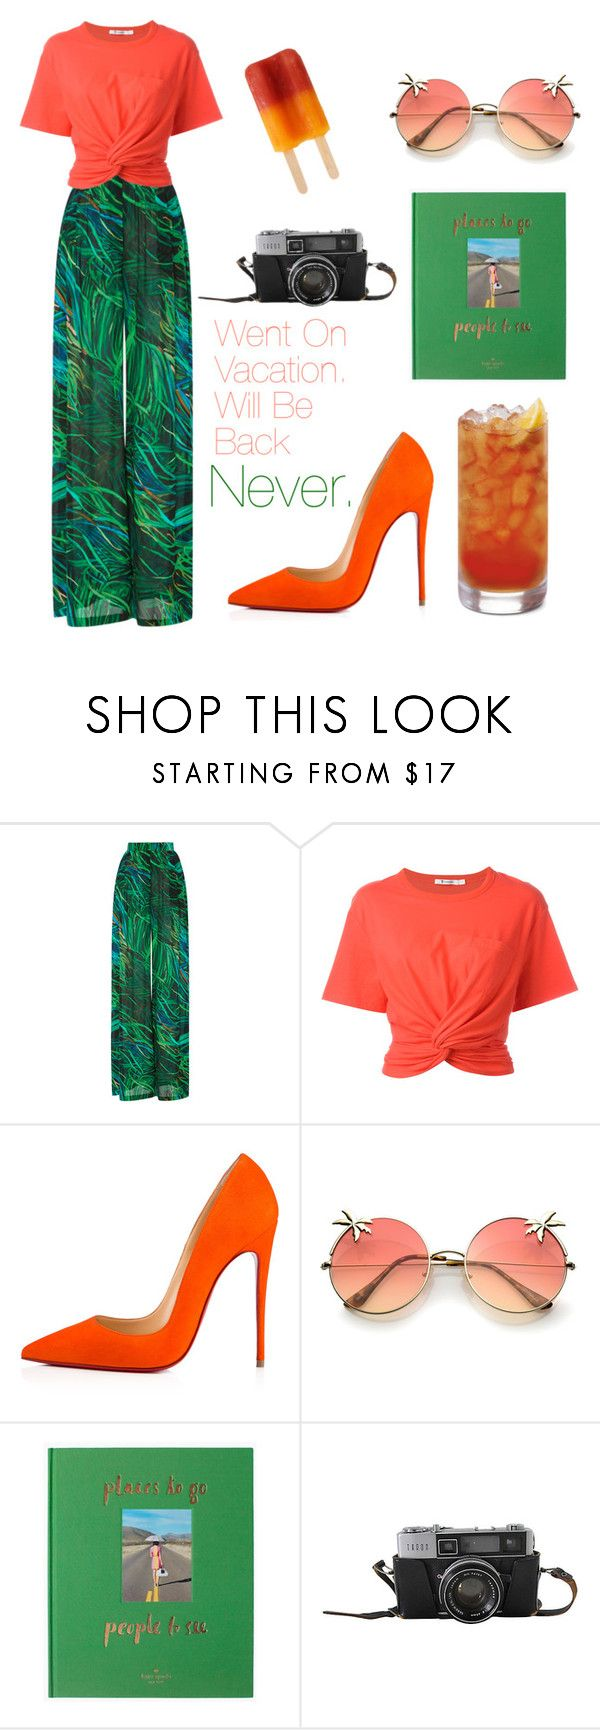 """""""Gone For Good"""" by edencarroll ❤ liked on Polyvore featuring Elie Saab, T By Alexander Wang, Christian Louboutin and Kate Spade"""